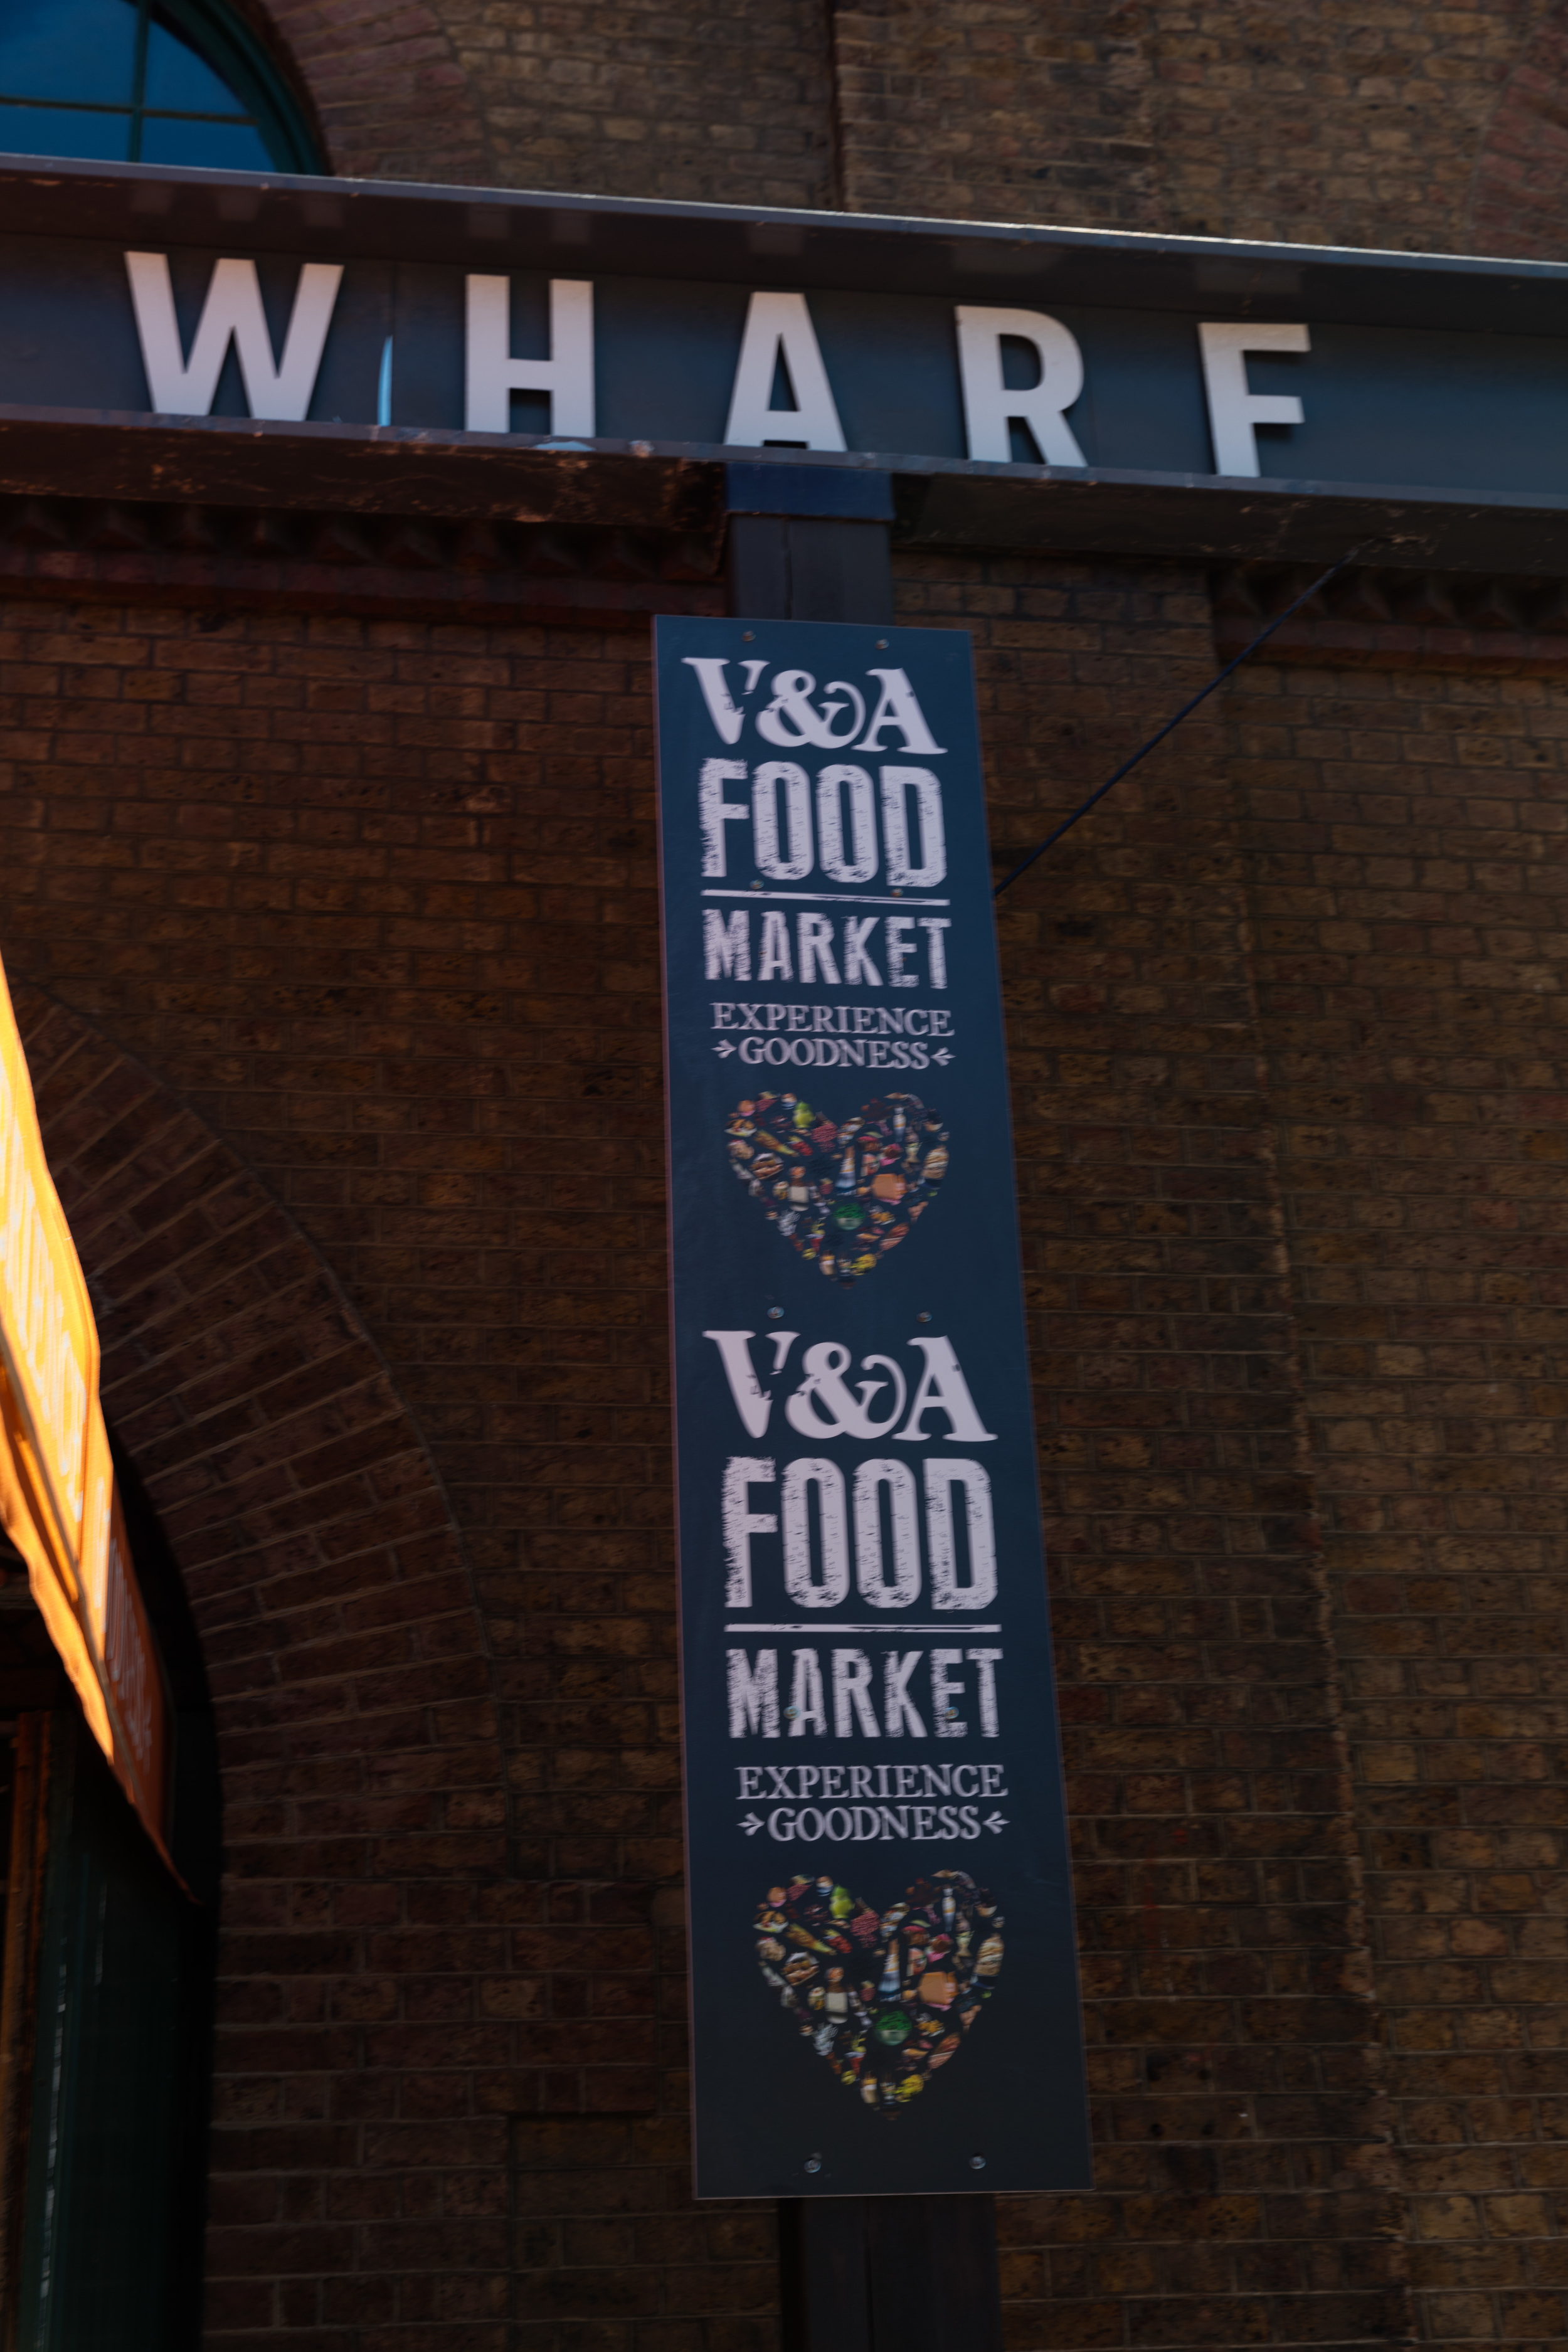 V & A Food Market, Cape Town, South Africa